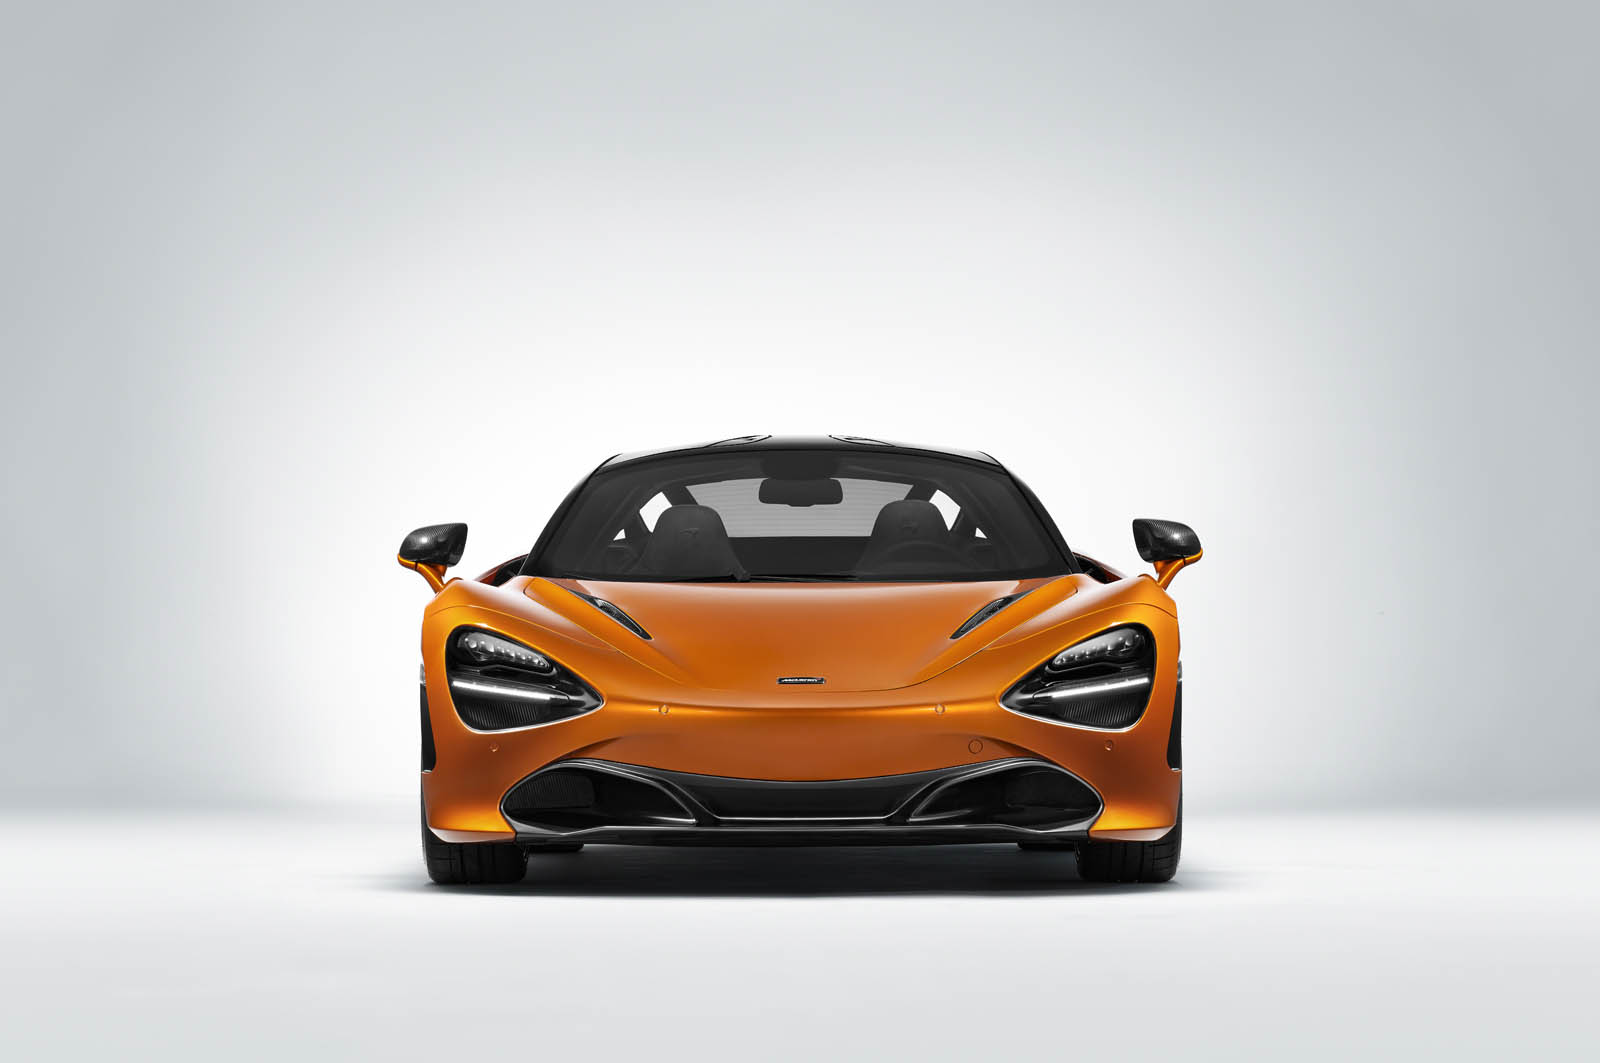 hight resolution of mclaren automotive the surrey england based manufacturer of luxury high performance sports and supercars has renewed the super series product family at